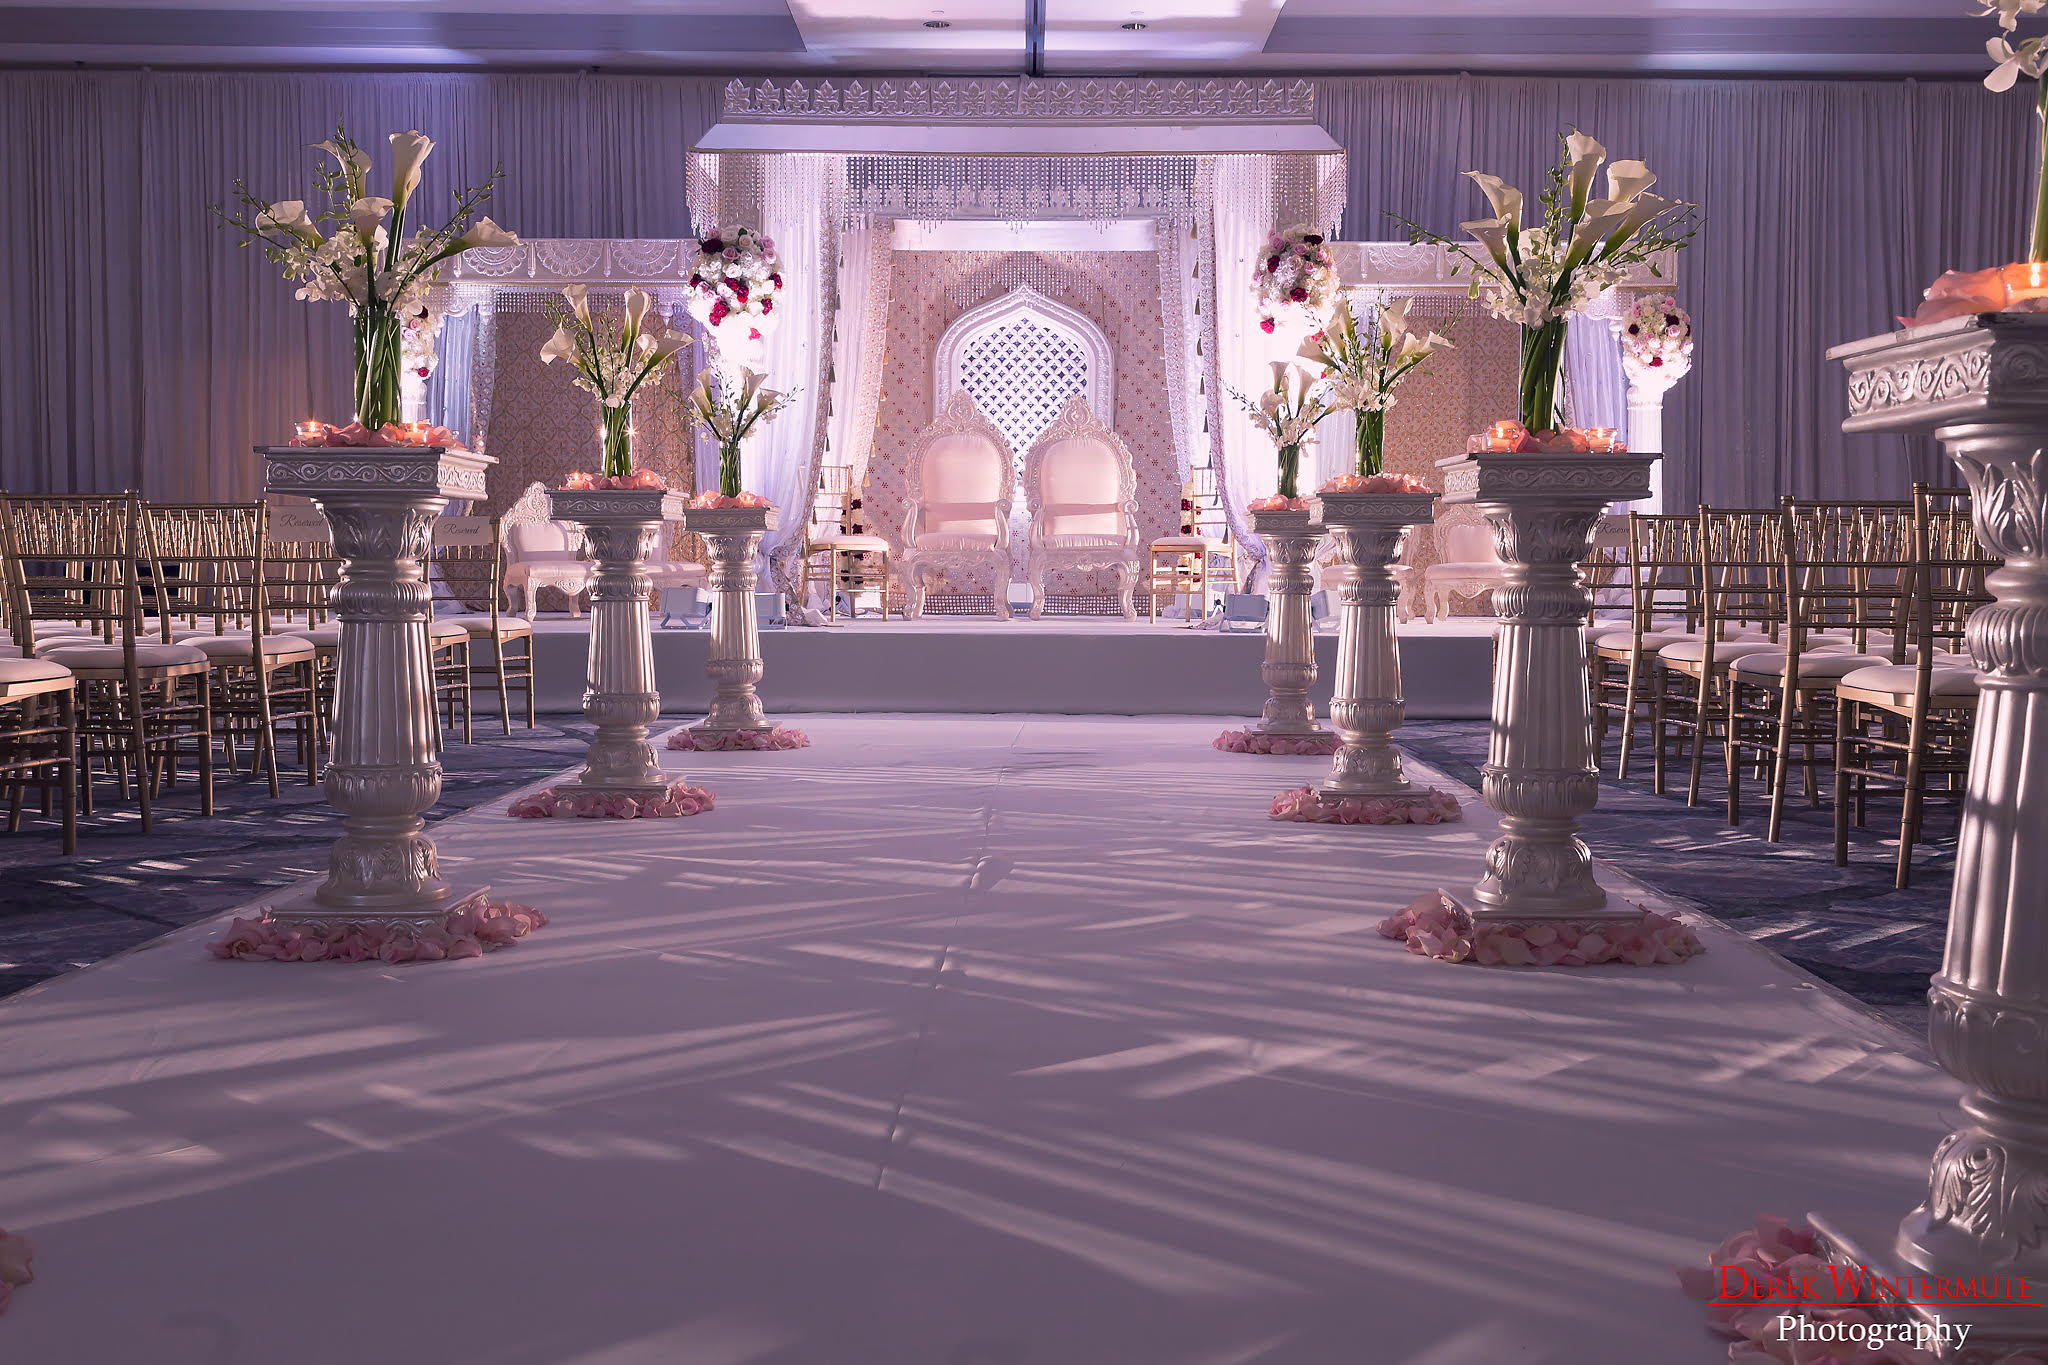 Pooja Lalwani - Beautiful, gorgeous, stunning, amazing… I simply do not have enough adjectives to describe the decorations created by Utopian Events for our wedding! Utopian helped to design multiple events for our wedding and each time I walked into the room before the event, I was literally stunned by the beauty of the room. However, what is truly amazing is that each successive event was even better than the last. Our mehendi was whimsical, elegant, and colorful. The ceremony was cool, sleek, but at the same time so ornate. And finally, our reception literally left me speechless with as it struck the perfect balance between being sparkly, but also so incredibly sophisticated! I don't know how to even thank Shushil, Angelica, and the entire team at Utopian Events – they took my incredibly vague ideas and transformed them into something any bride would LOVE to have at her wedding!If you are considering hiring Utopian Events for your wedding – here are a few details about my experience that may help you along your way. First off, I am a bride that lives in the North East, but decided to have the wedding in Atlanta. As a result, I had to meet with many of my vendors during my few and far between whirlwind weekend trips to Atlanta or work with my vendors remotely. During one of my trips to Atlanta before the wedding, we met with a number of different decorators and I have to say, there is absolutely no competition between what Shushil offers and other decorators in Atlanta (I know that sounds so mean to the other decorators, but I truly believe Shushil stands well above everyone else! :P).Here is why I think UE was so amazing though: 1. The inventory available with UE was much more extensive than many others; 2. The creativity displayed by Shushil during our first meeting – I gave him some ideas as to what I wanted and he immediately began tossing out ideas and showing me a variety of pictures to hone in on my tastes.; 3. The high level of responsiveness – there was n